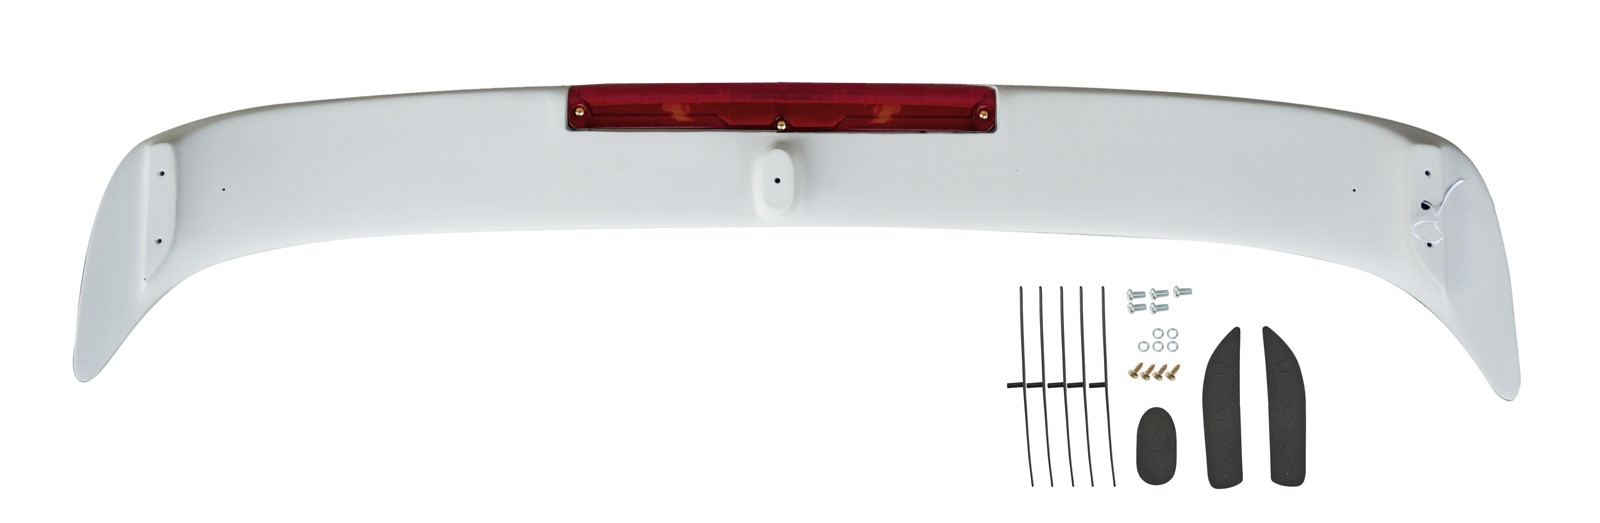 1979-1993 Mustang Coupe & Convertible Rear Wing Spoiler, Ready to Paint!